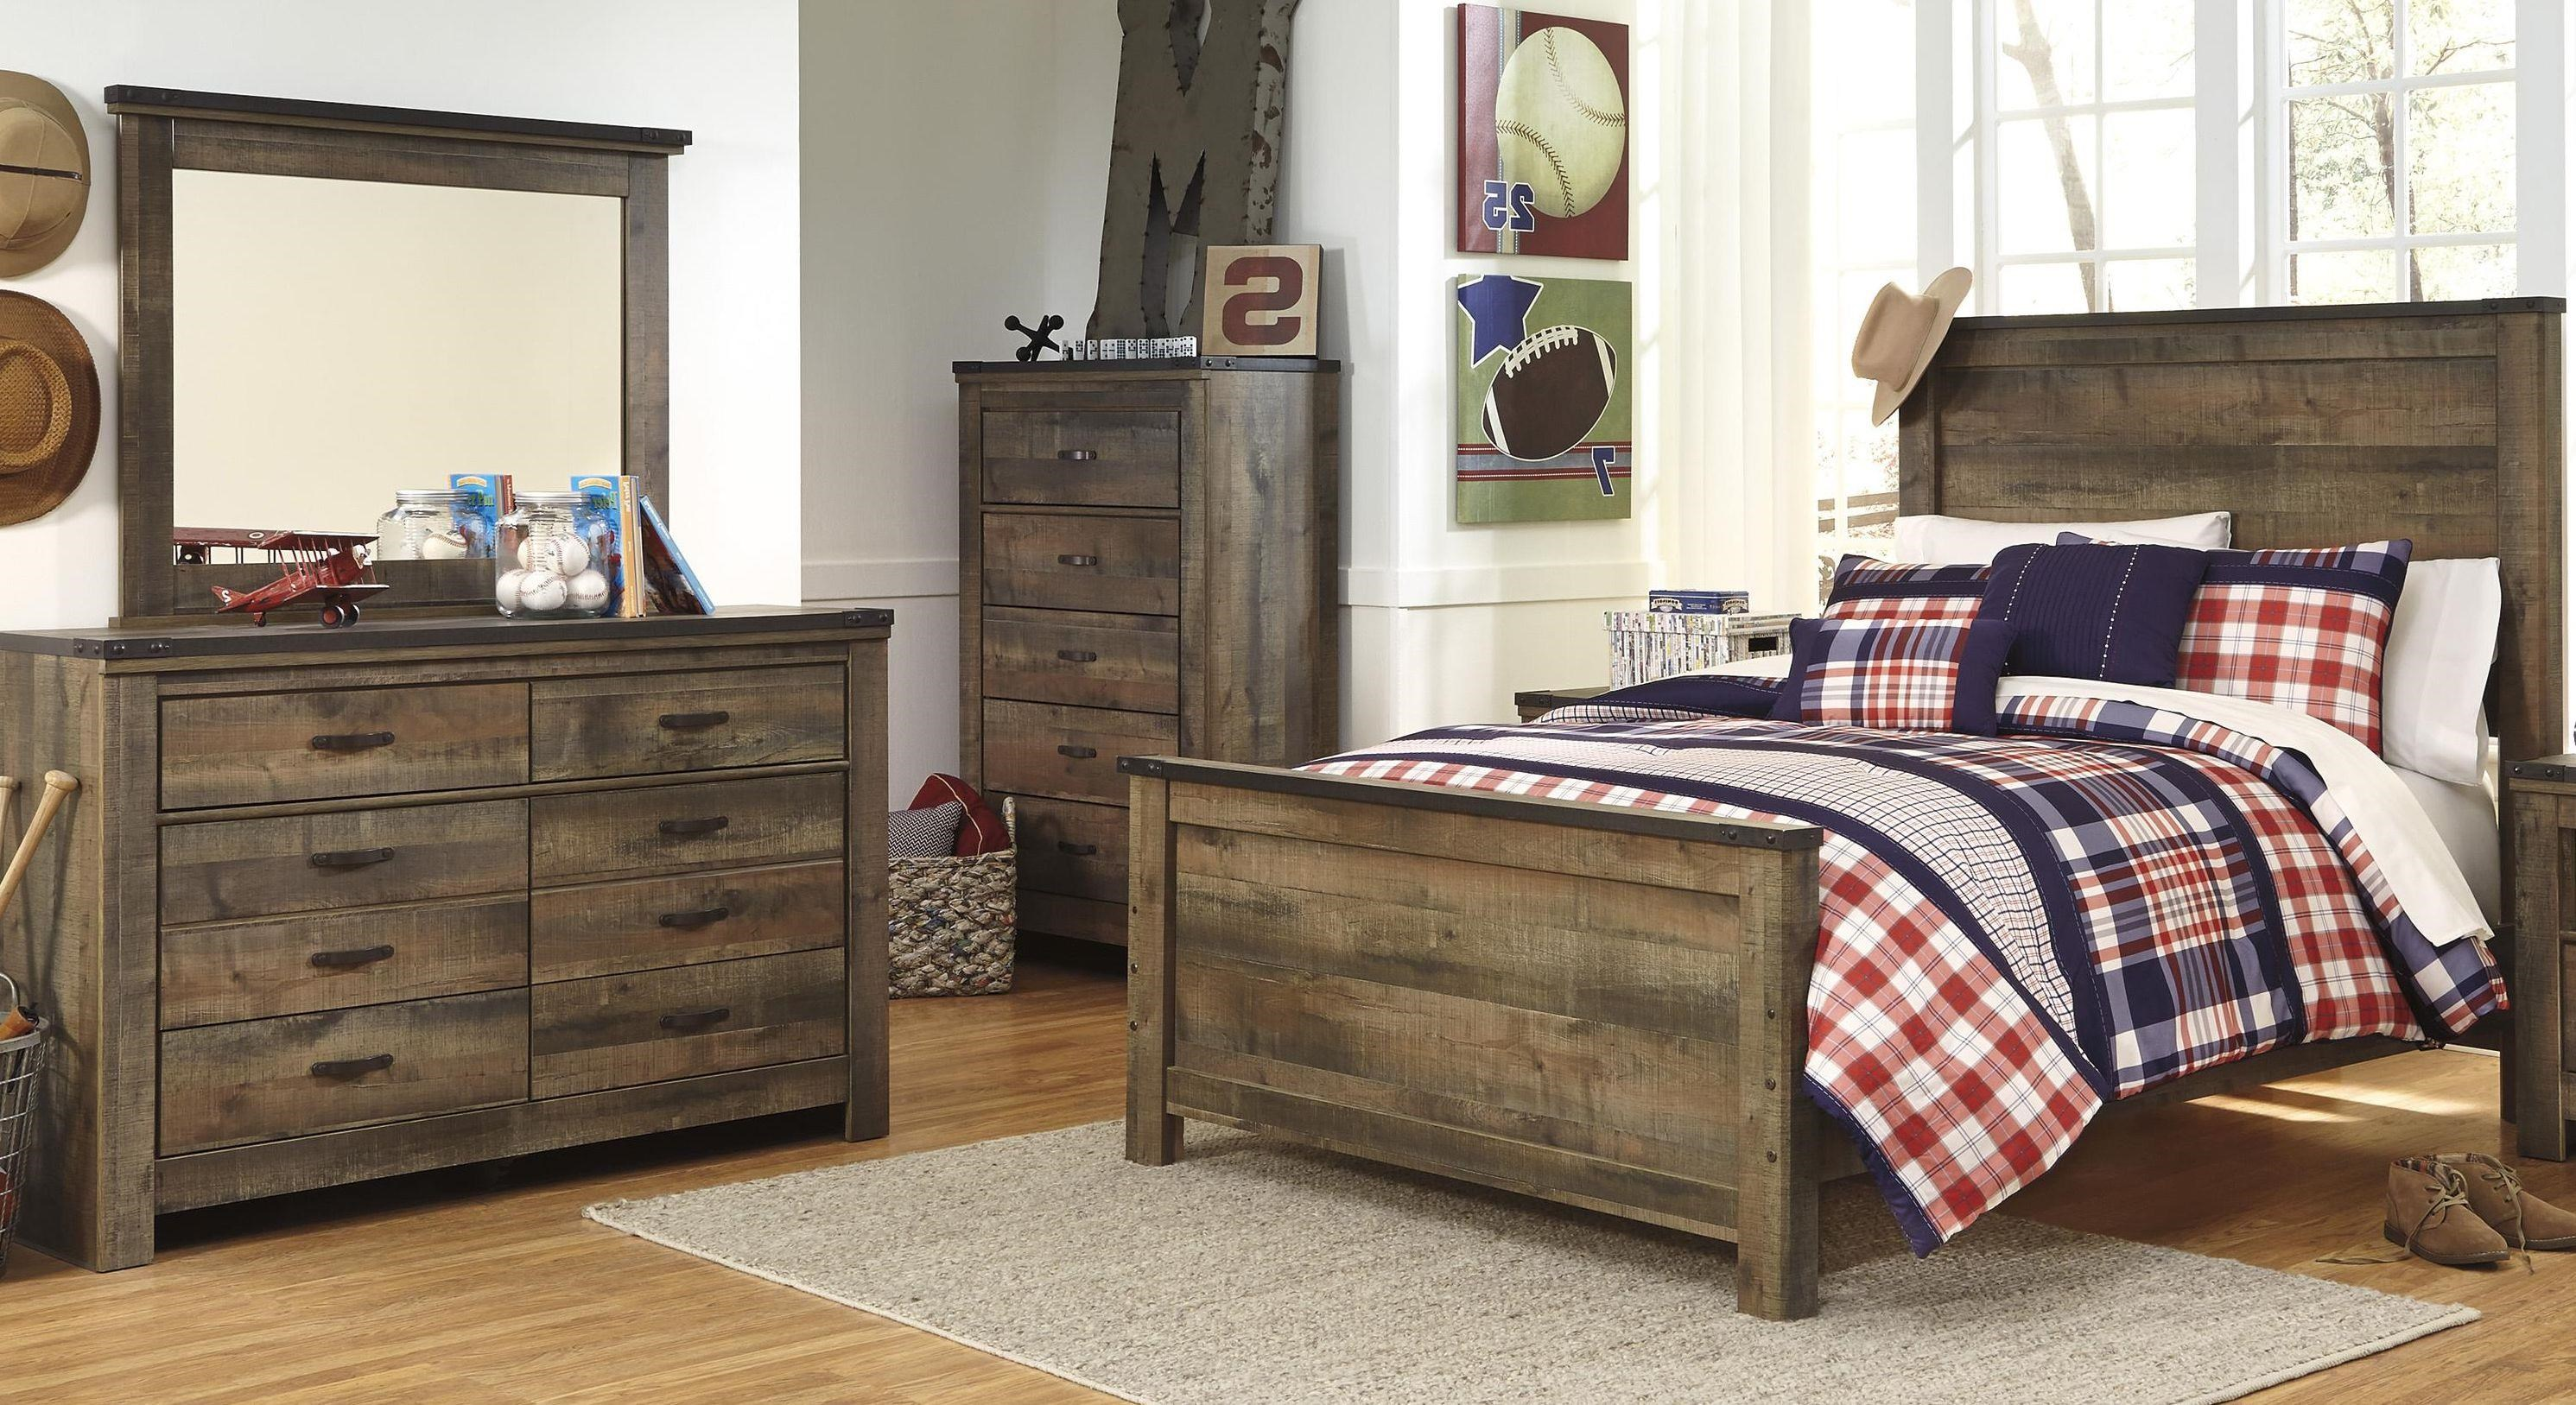 Signature Design By Ashley Trinell Full Bed, Dresser And Mirror